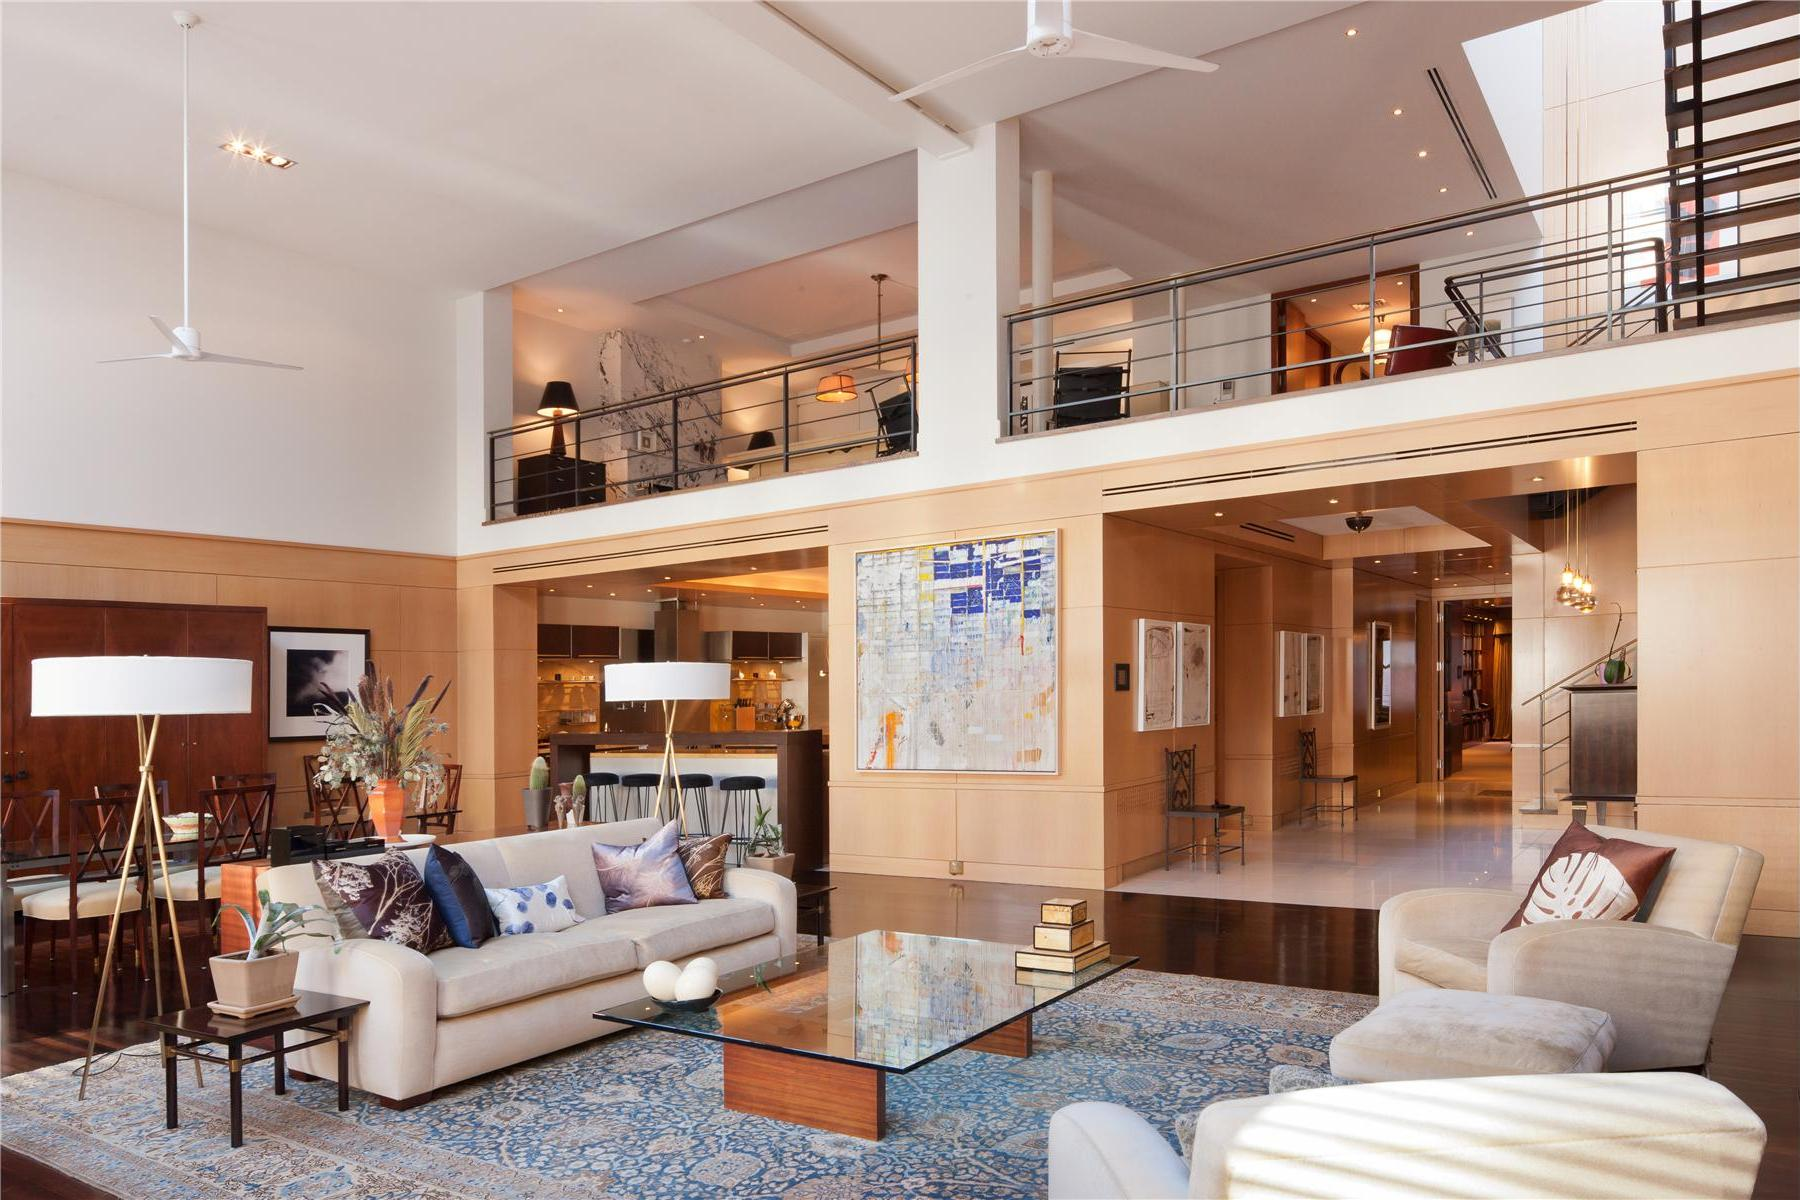 Superb luxury penthouse in tribeca new york 2 for Apartments in tribeca nyc